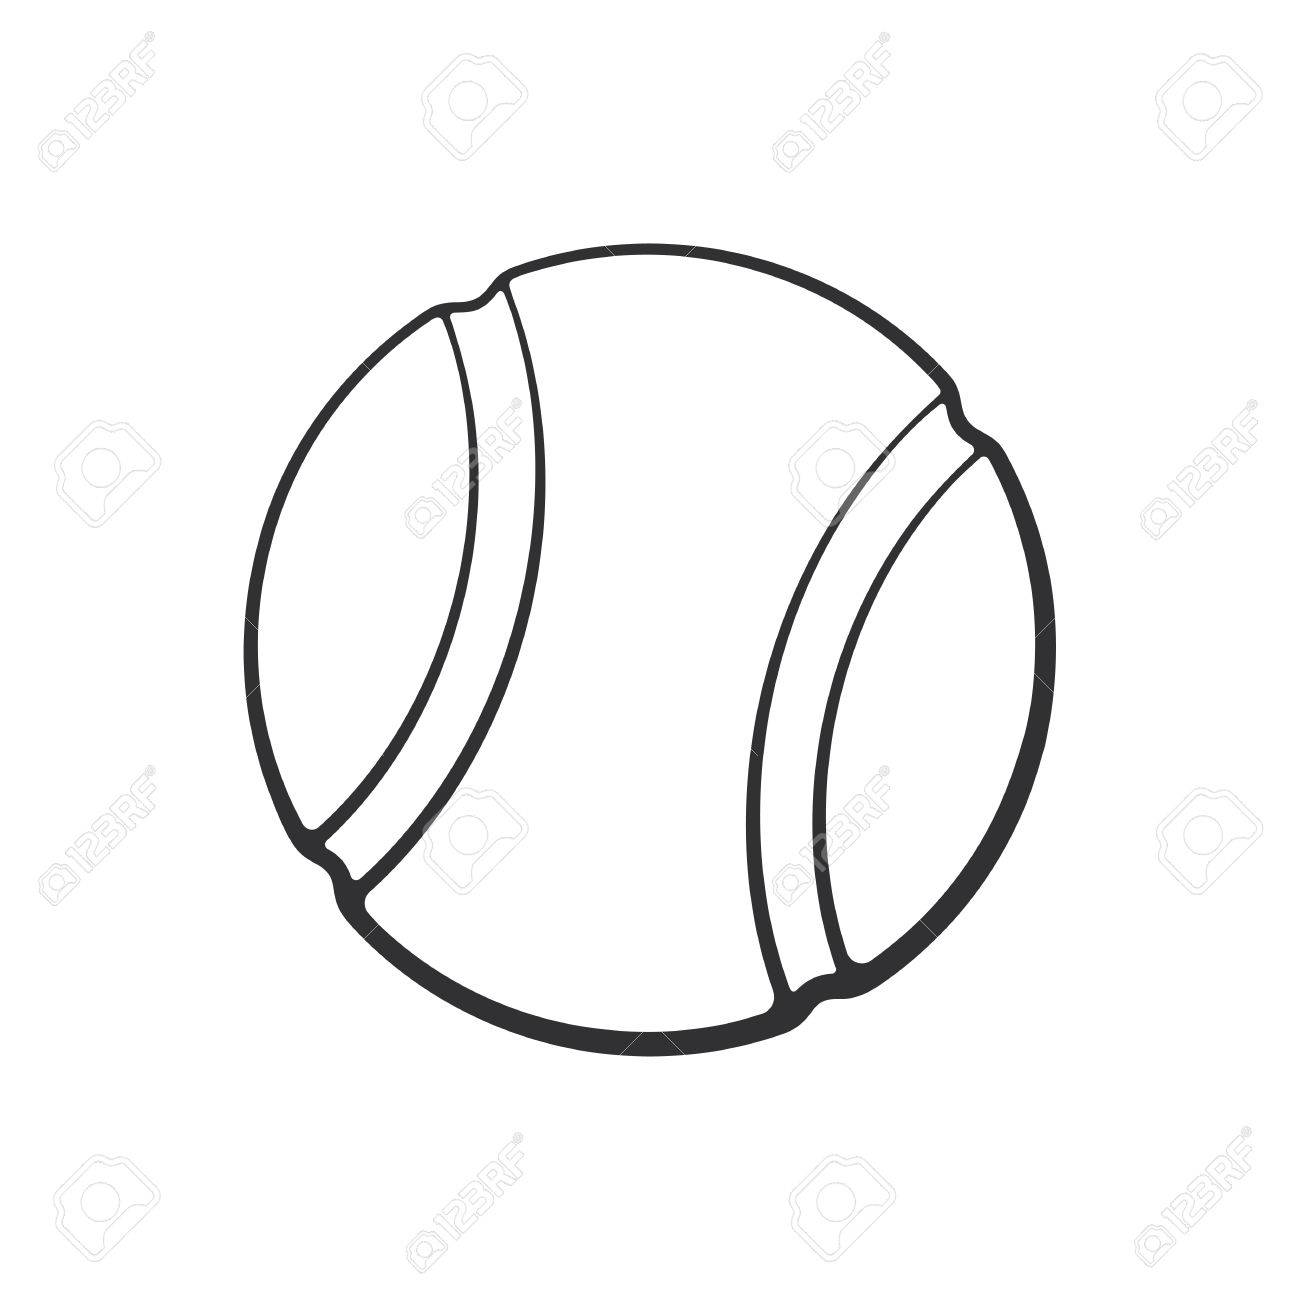 Vector Illustration Hand Drawn Doodle Of Tennis Ball Sports